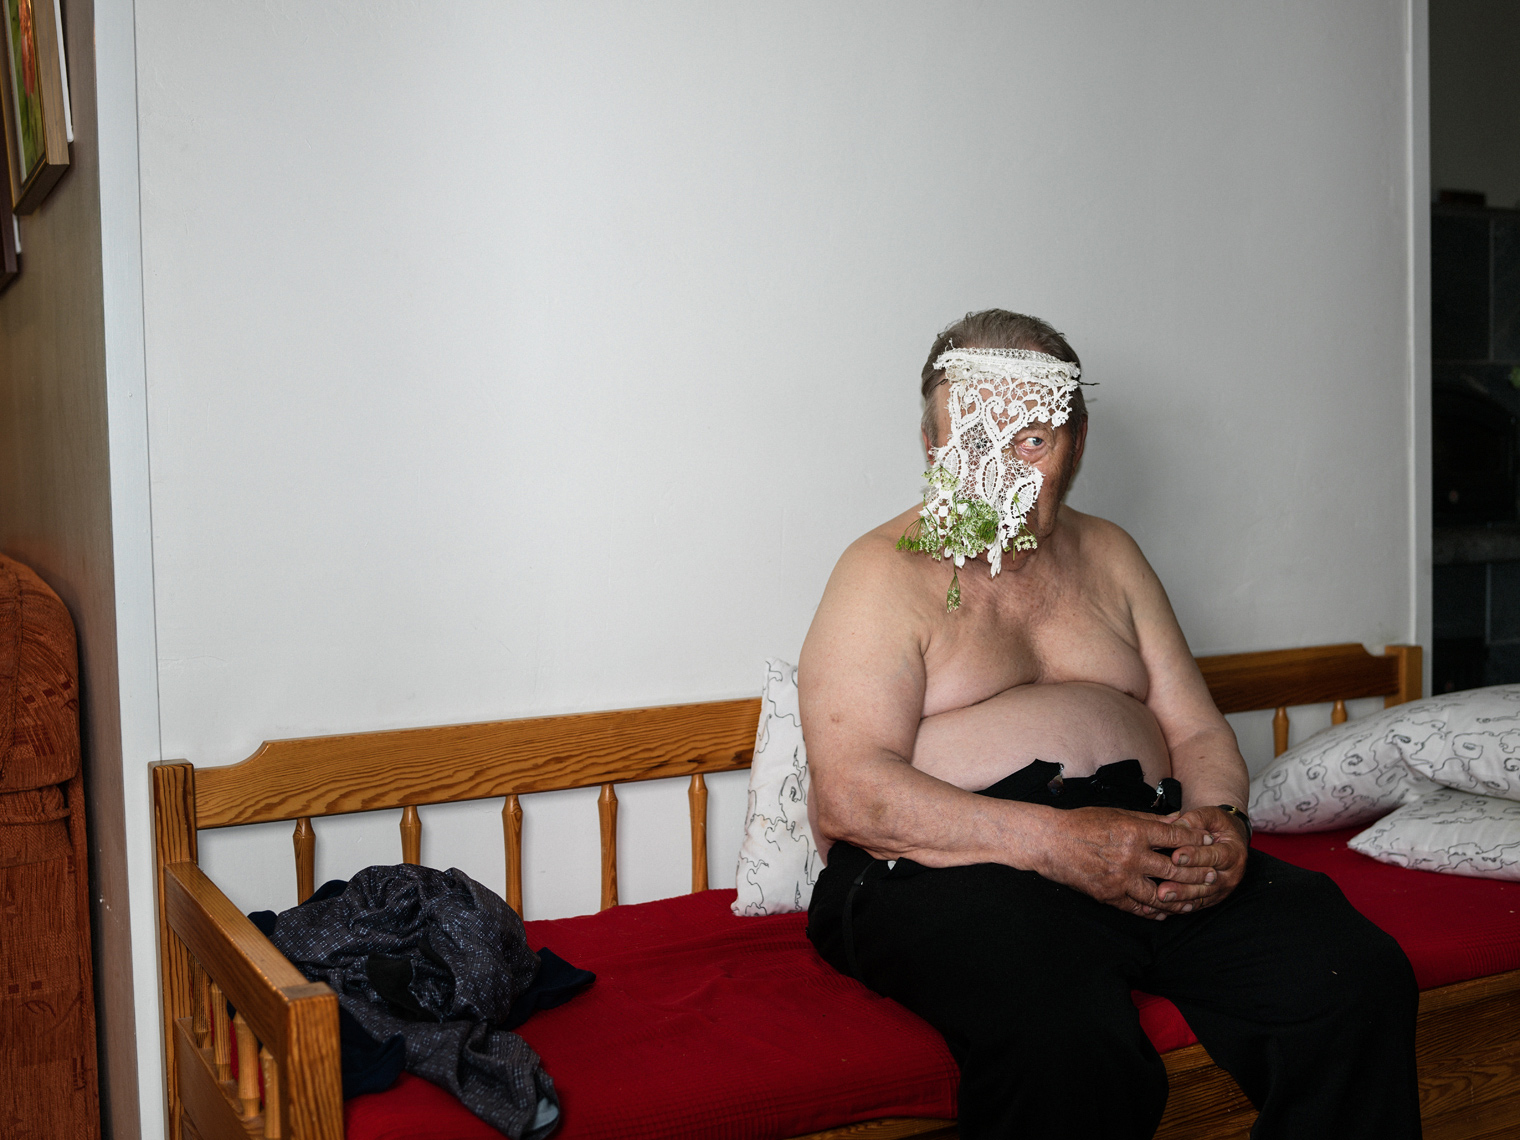 Last Machos // Documentary Photo // Aki-Pekka Sinikoski, Photographer from Helsinki, Finland